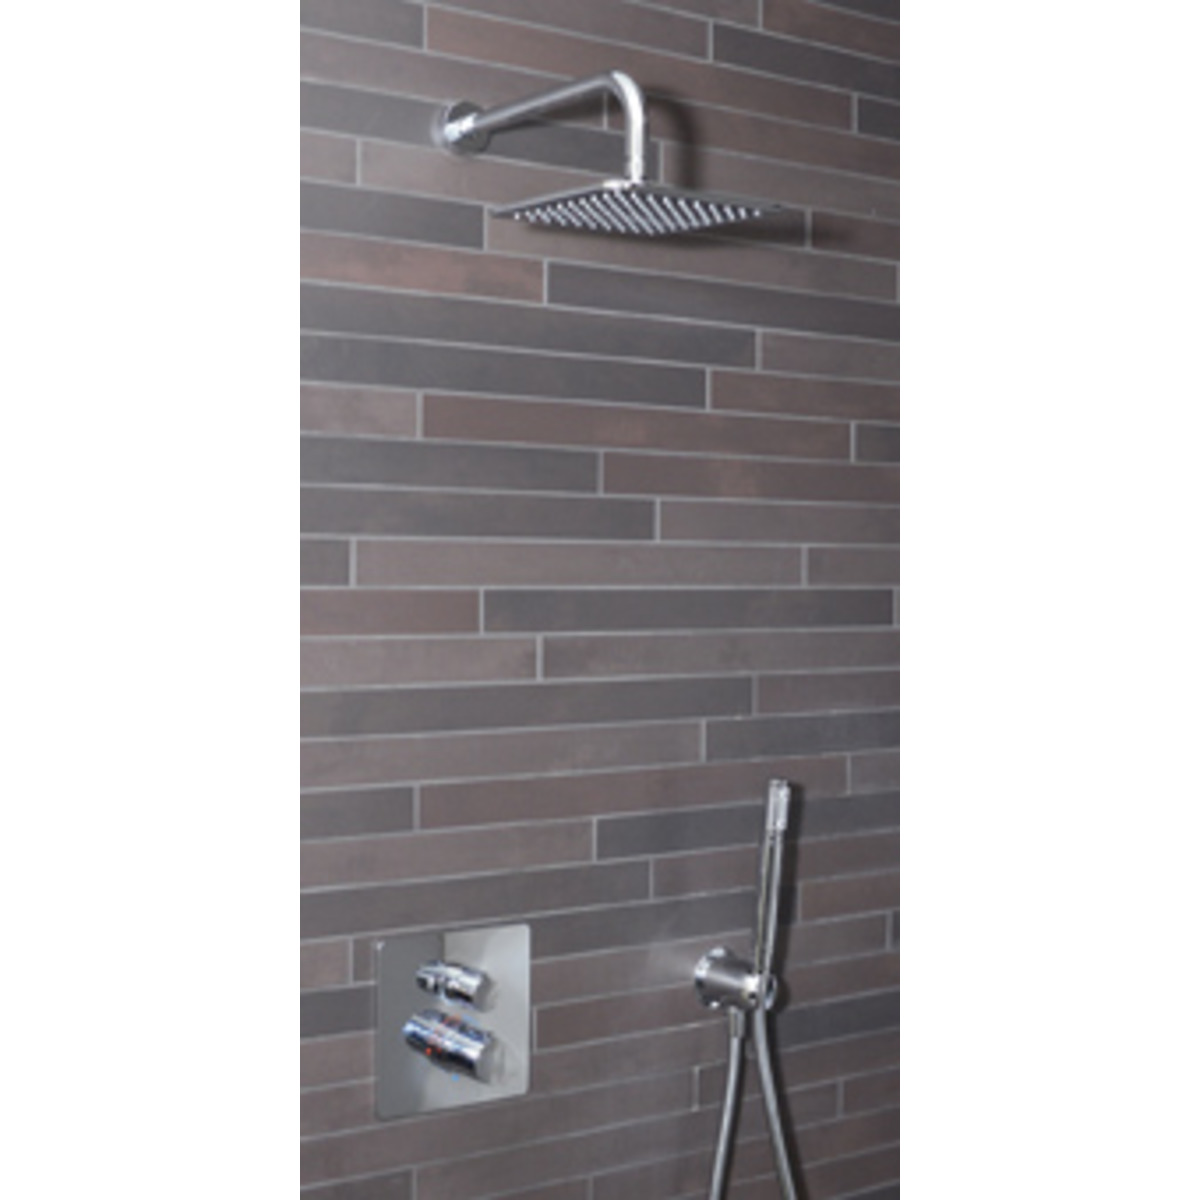 ideal standard showerpack easy box slim colonne de douche thermostatique encastrable avec douche. Black Bedroom Furniture Sets. Home Design Ideas